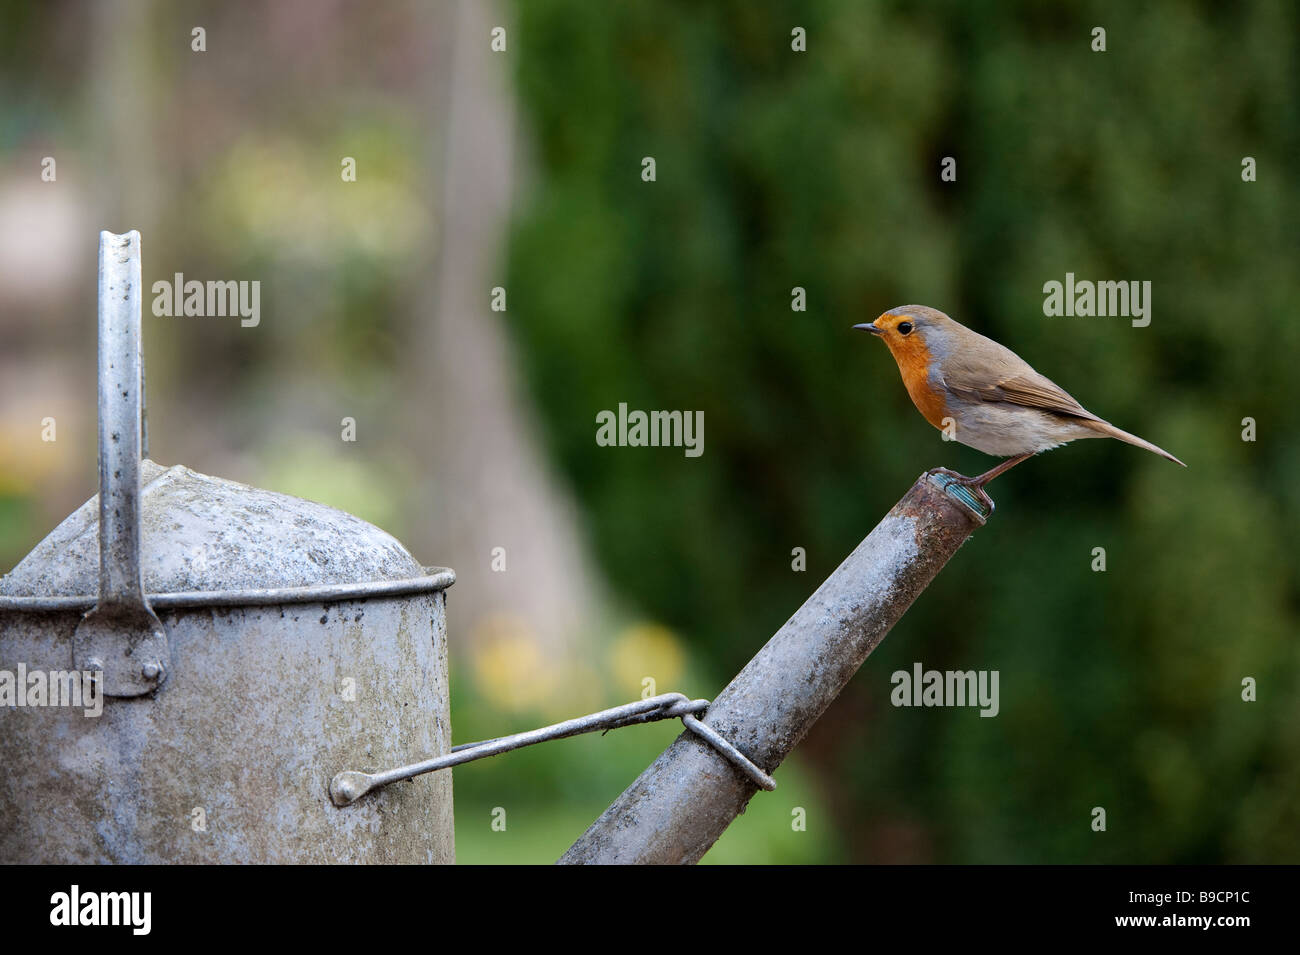 Robin perched on the spout of a metal watering can - Stock Image